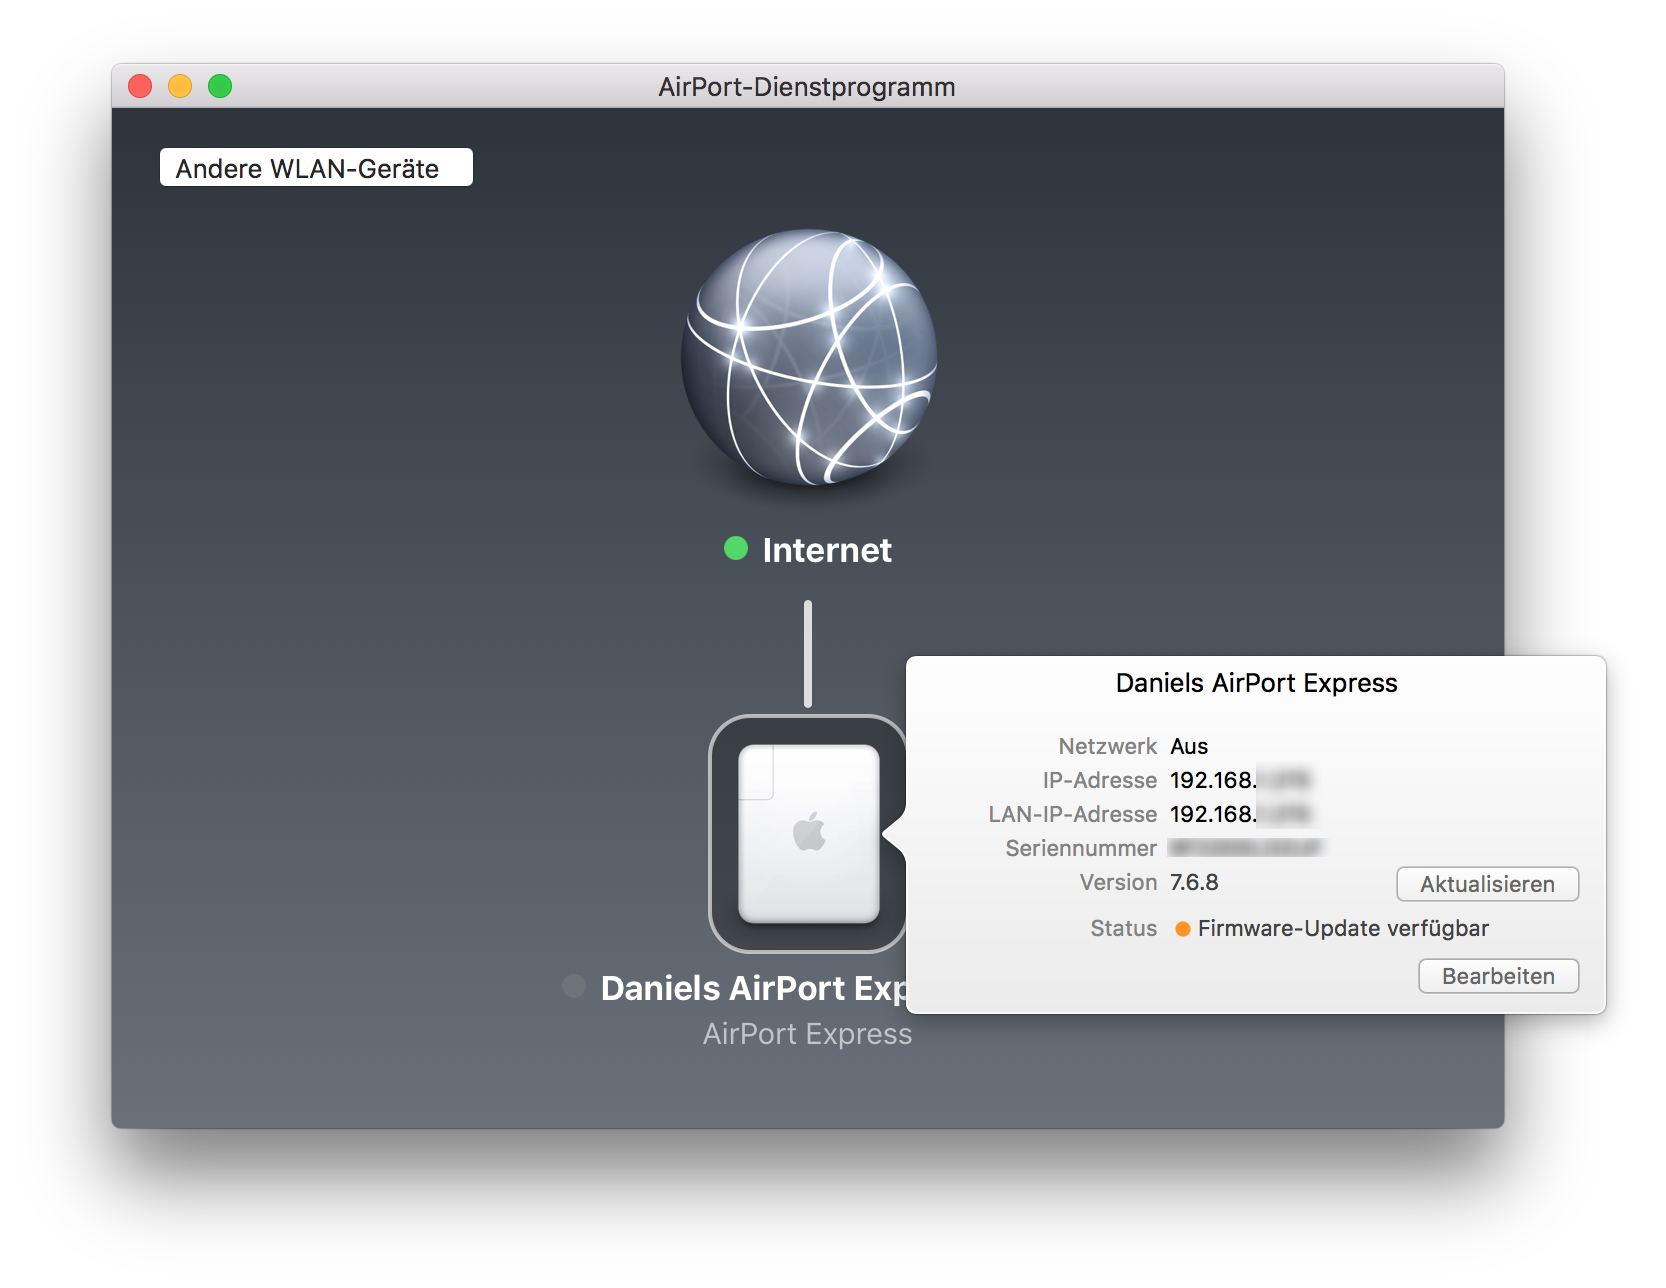 Apple AirPort Express Software Version 7.6.8